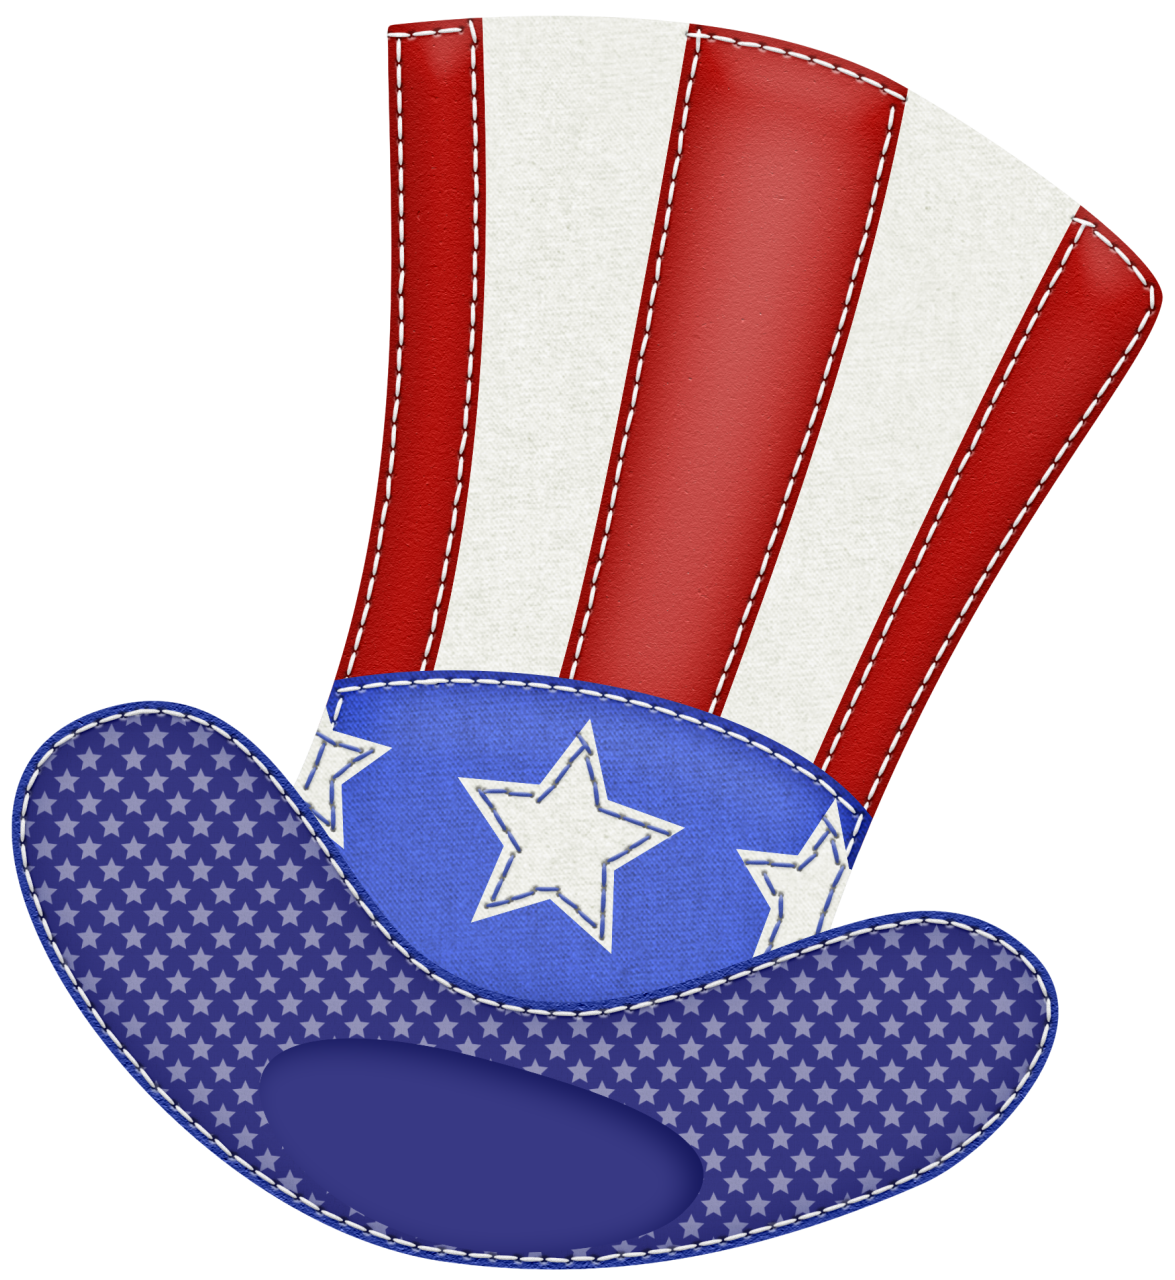 Patriotic hat clipart picture.